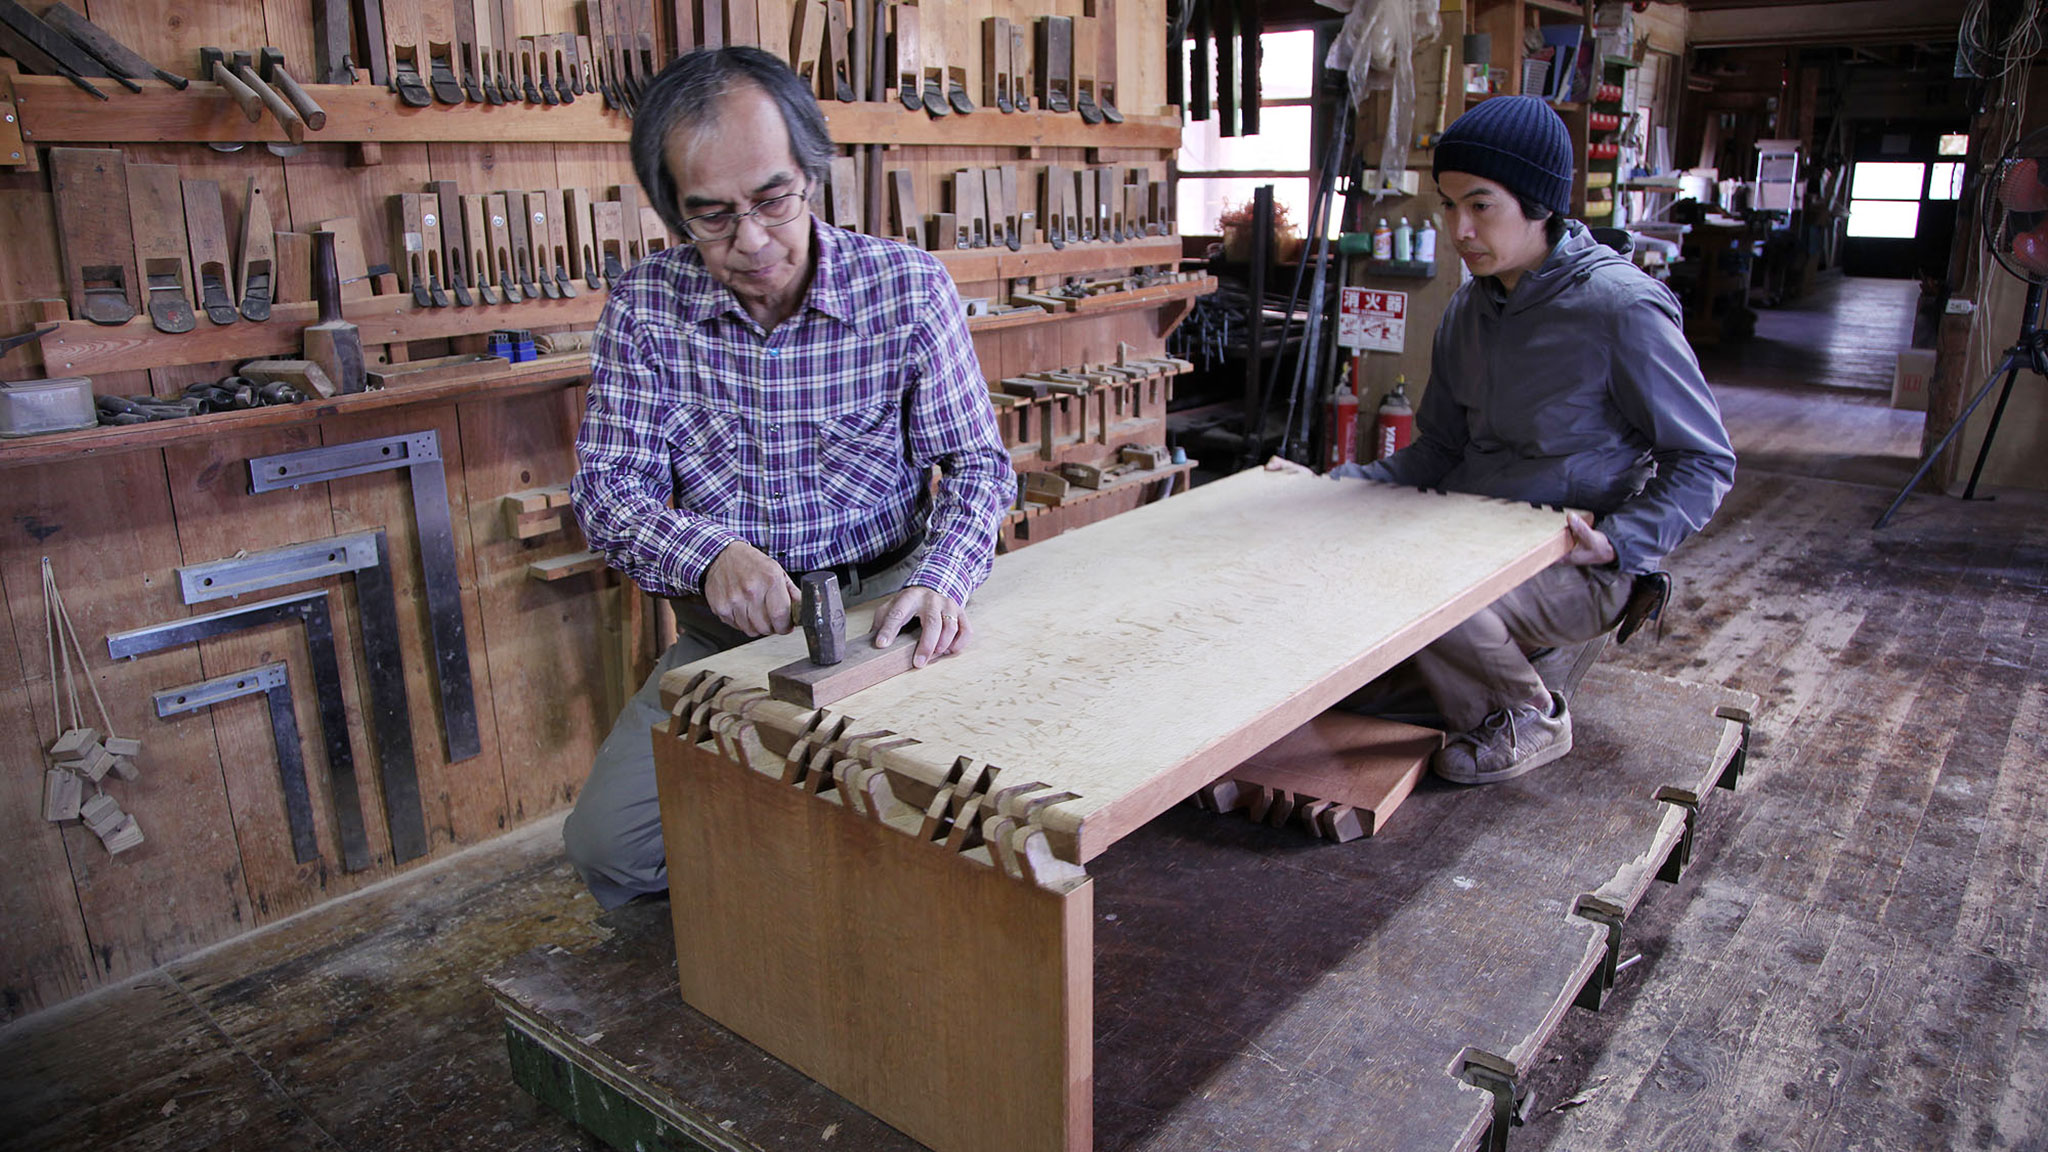 Japanese joiner whose handmade furniture has hidden connections | Financial Times